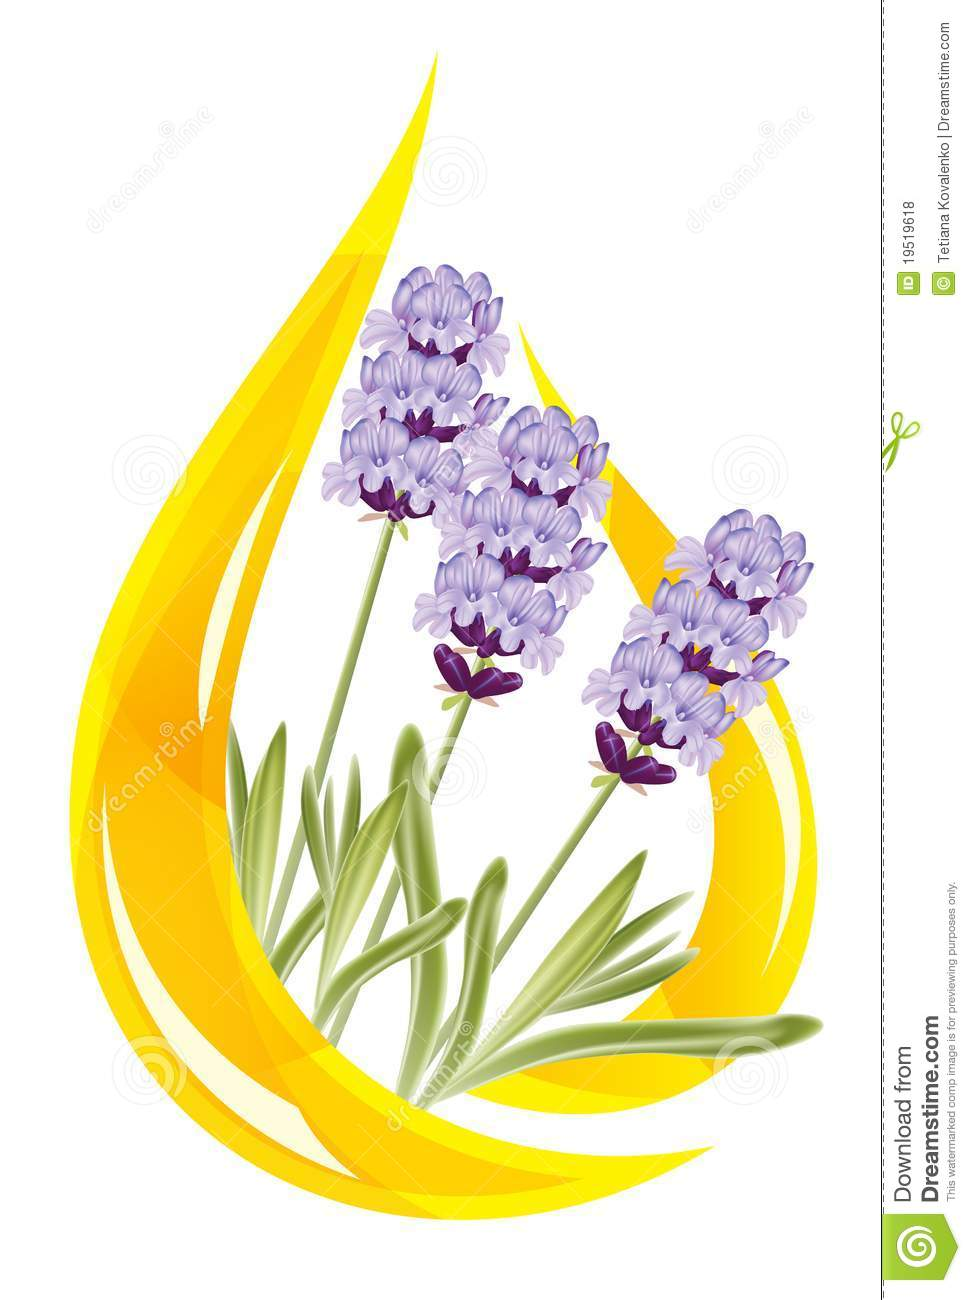 A Drop Of Lavender Essential Oil Royalty Free Stock Photos  Image 19519618